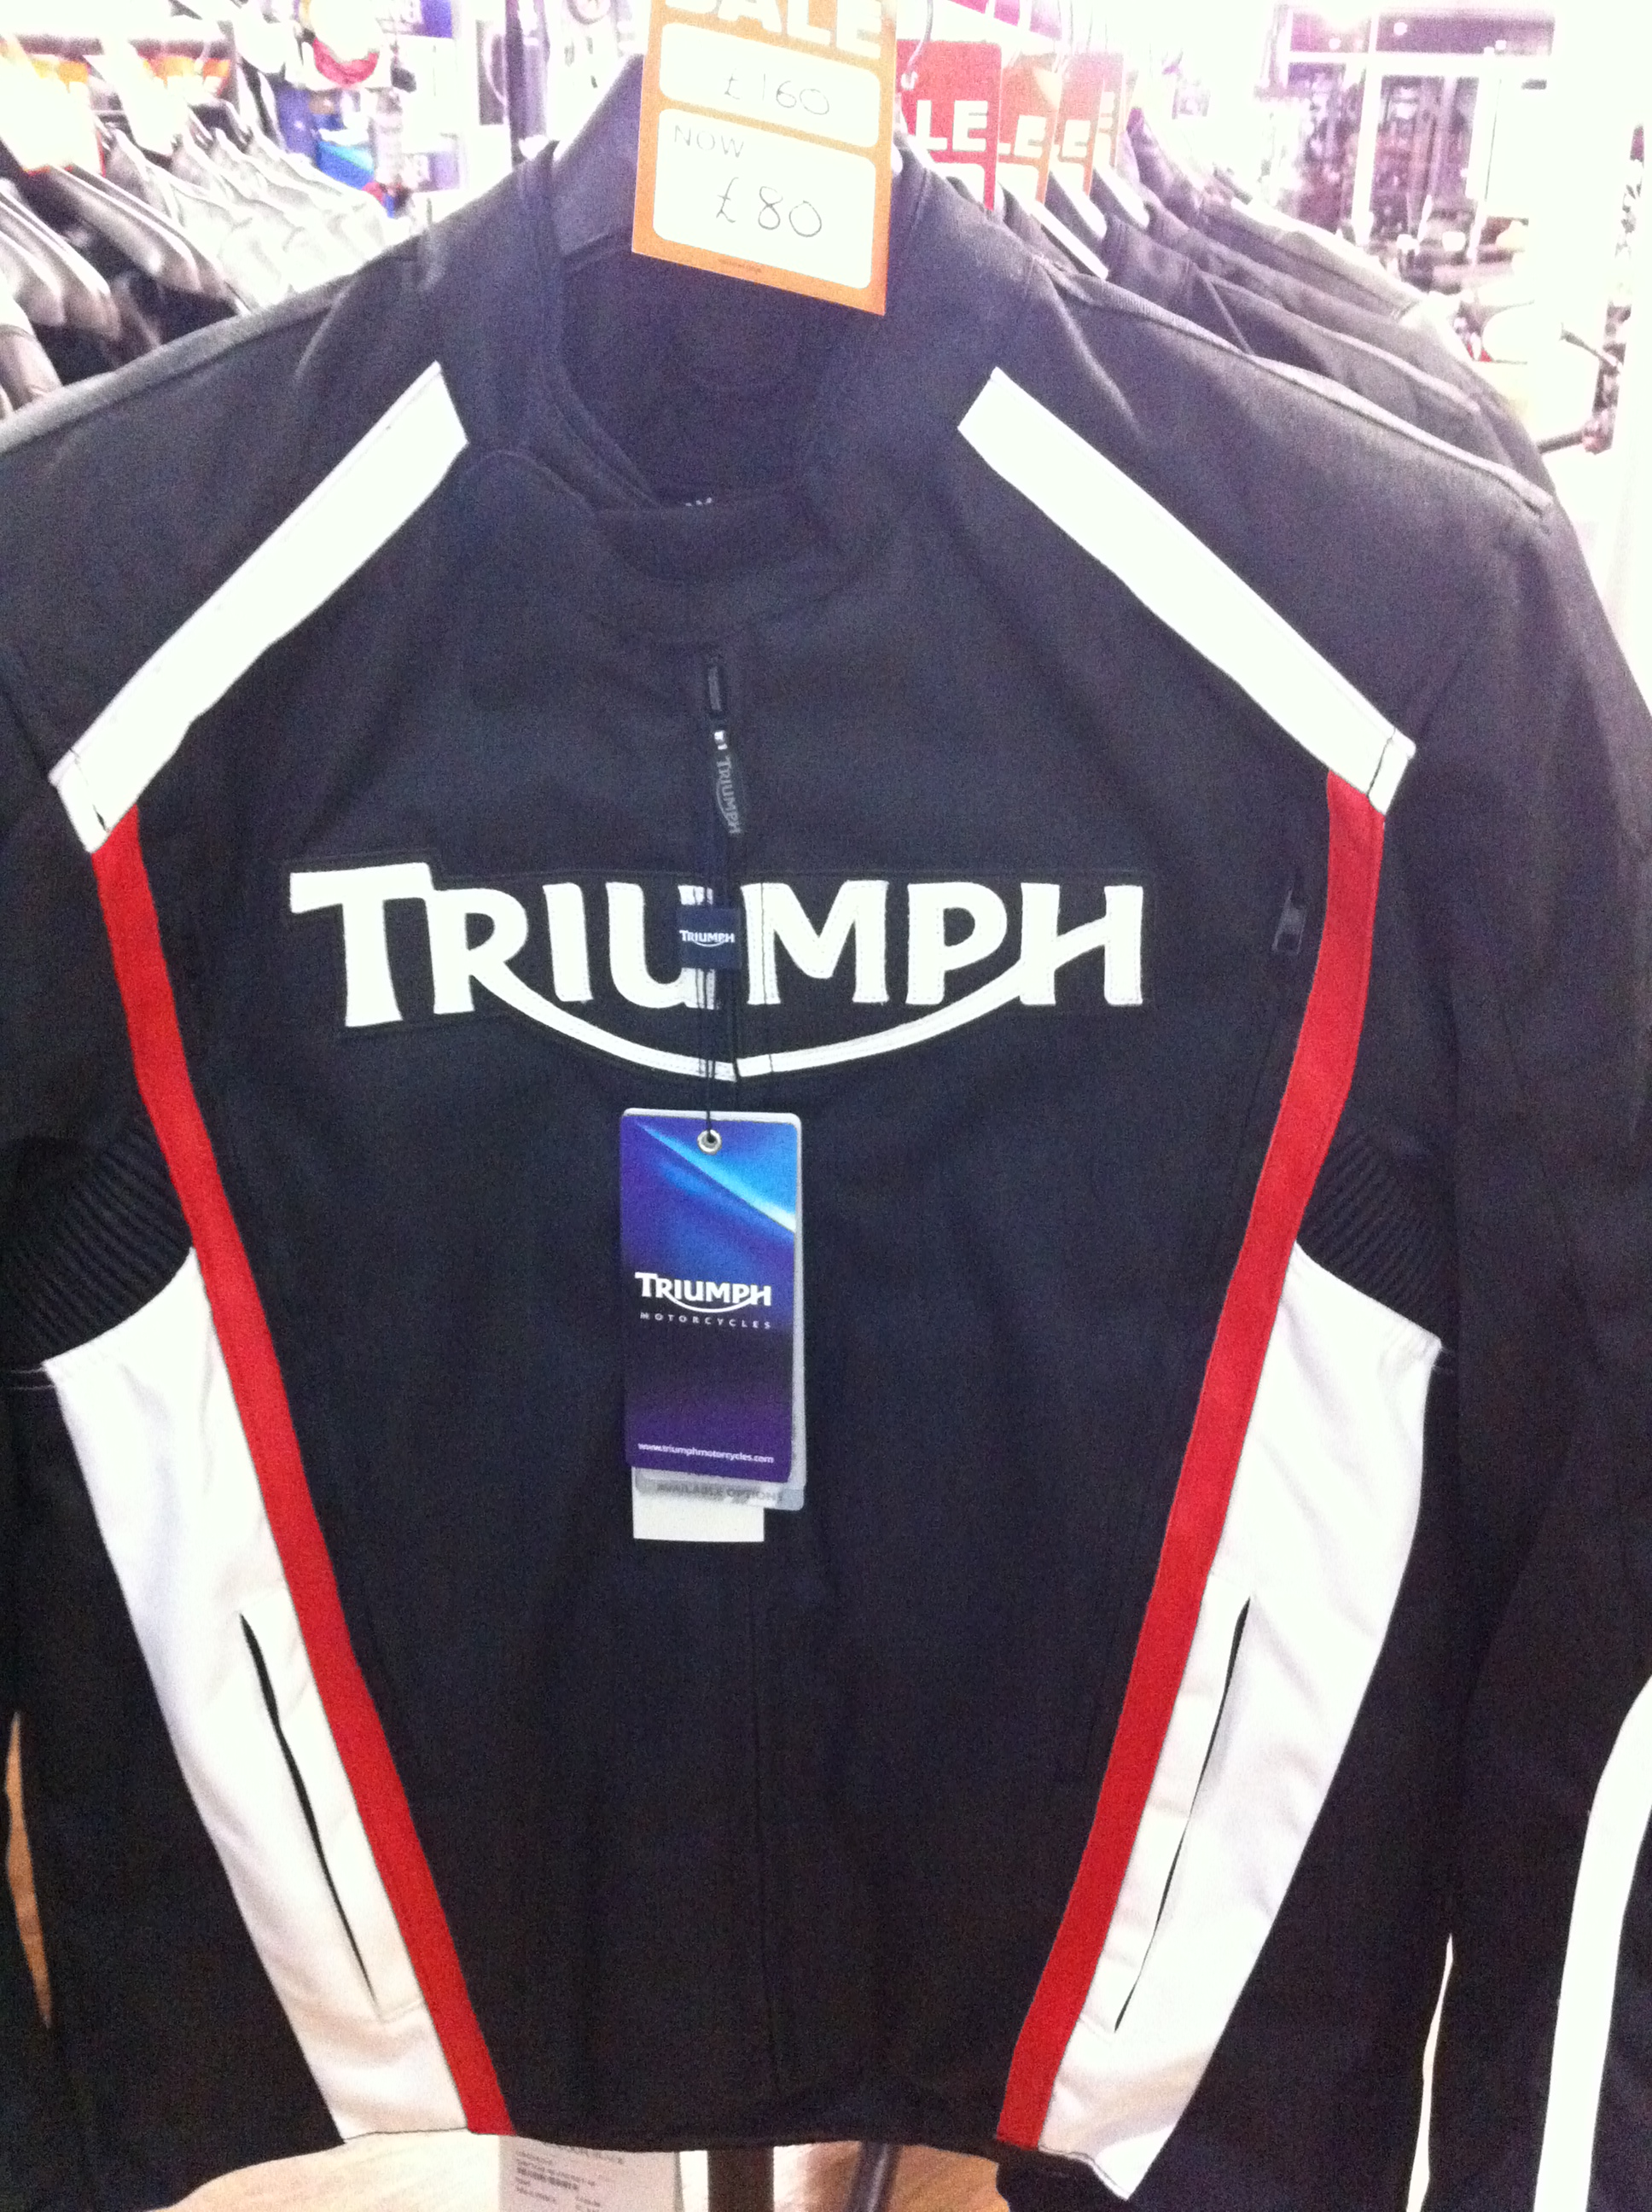 clothing offer at laguna seen today | 675.cc • triumph 675 forum